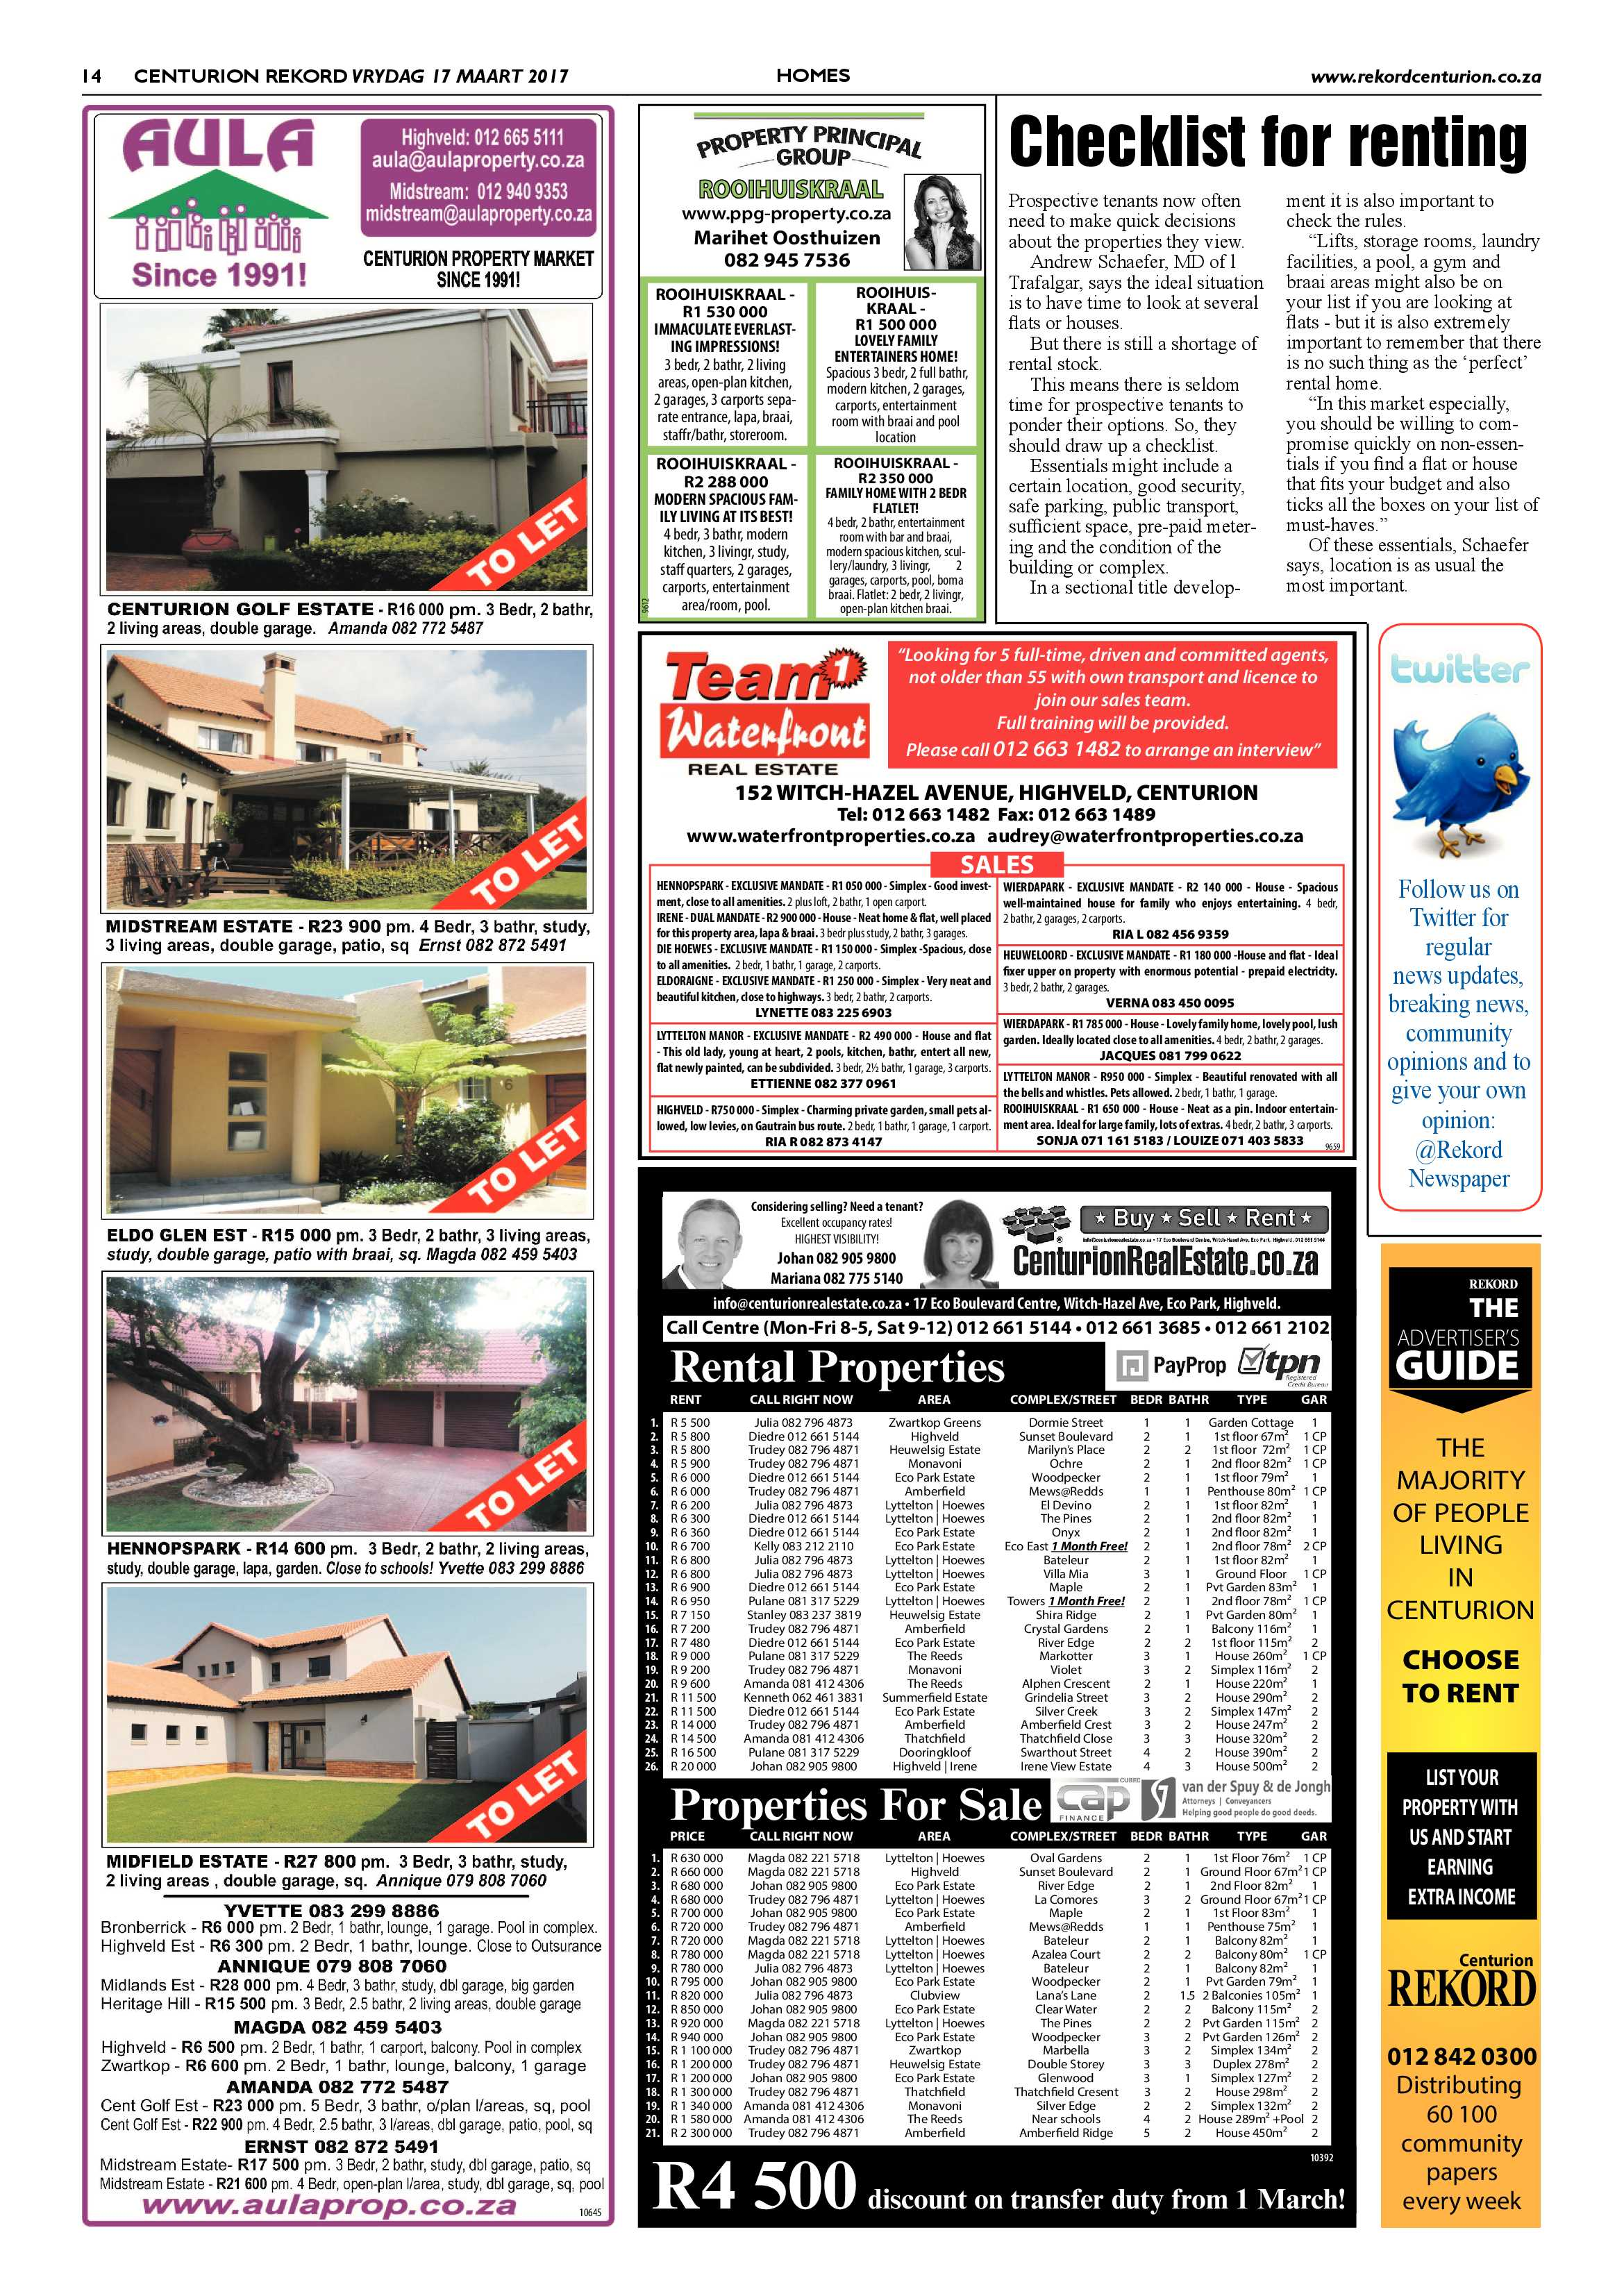 rekord-centurion-17-march-2017-epapers-page-14